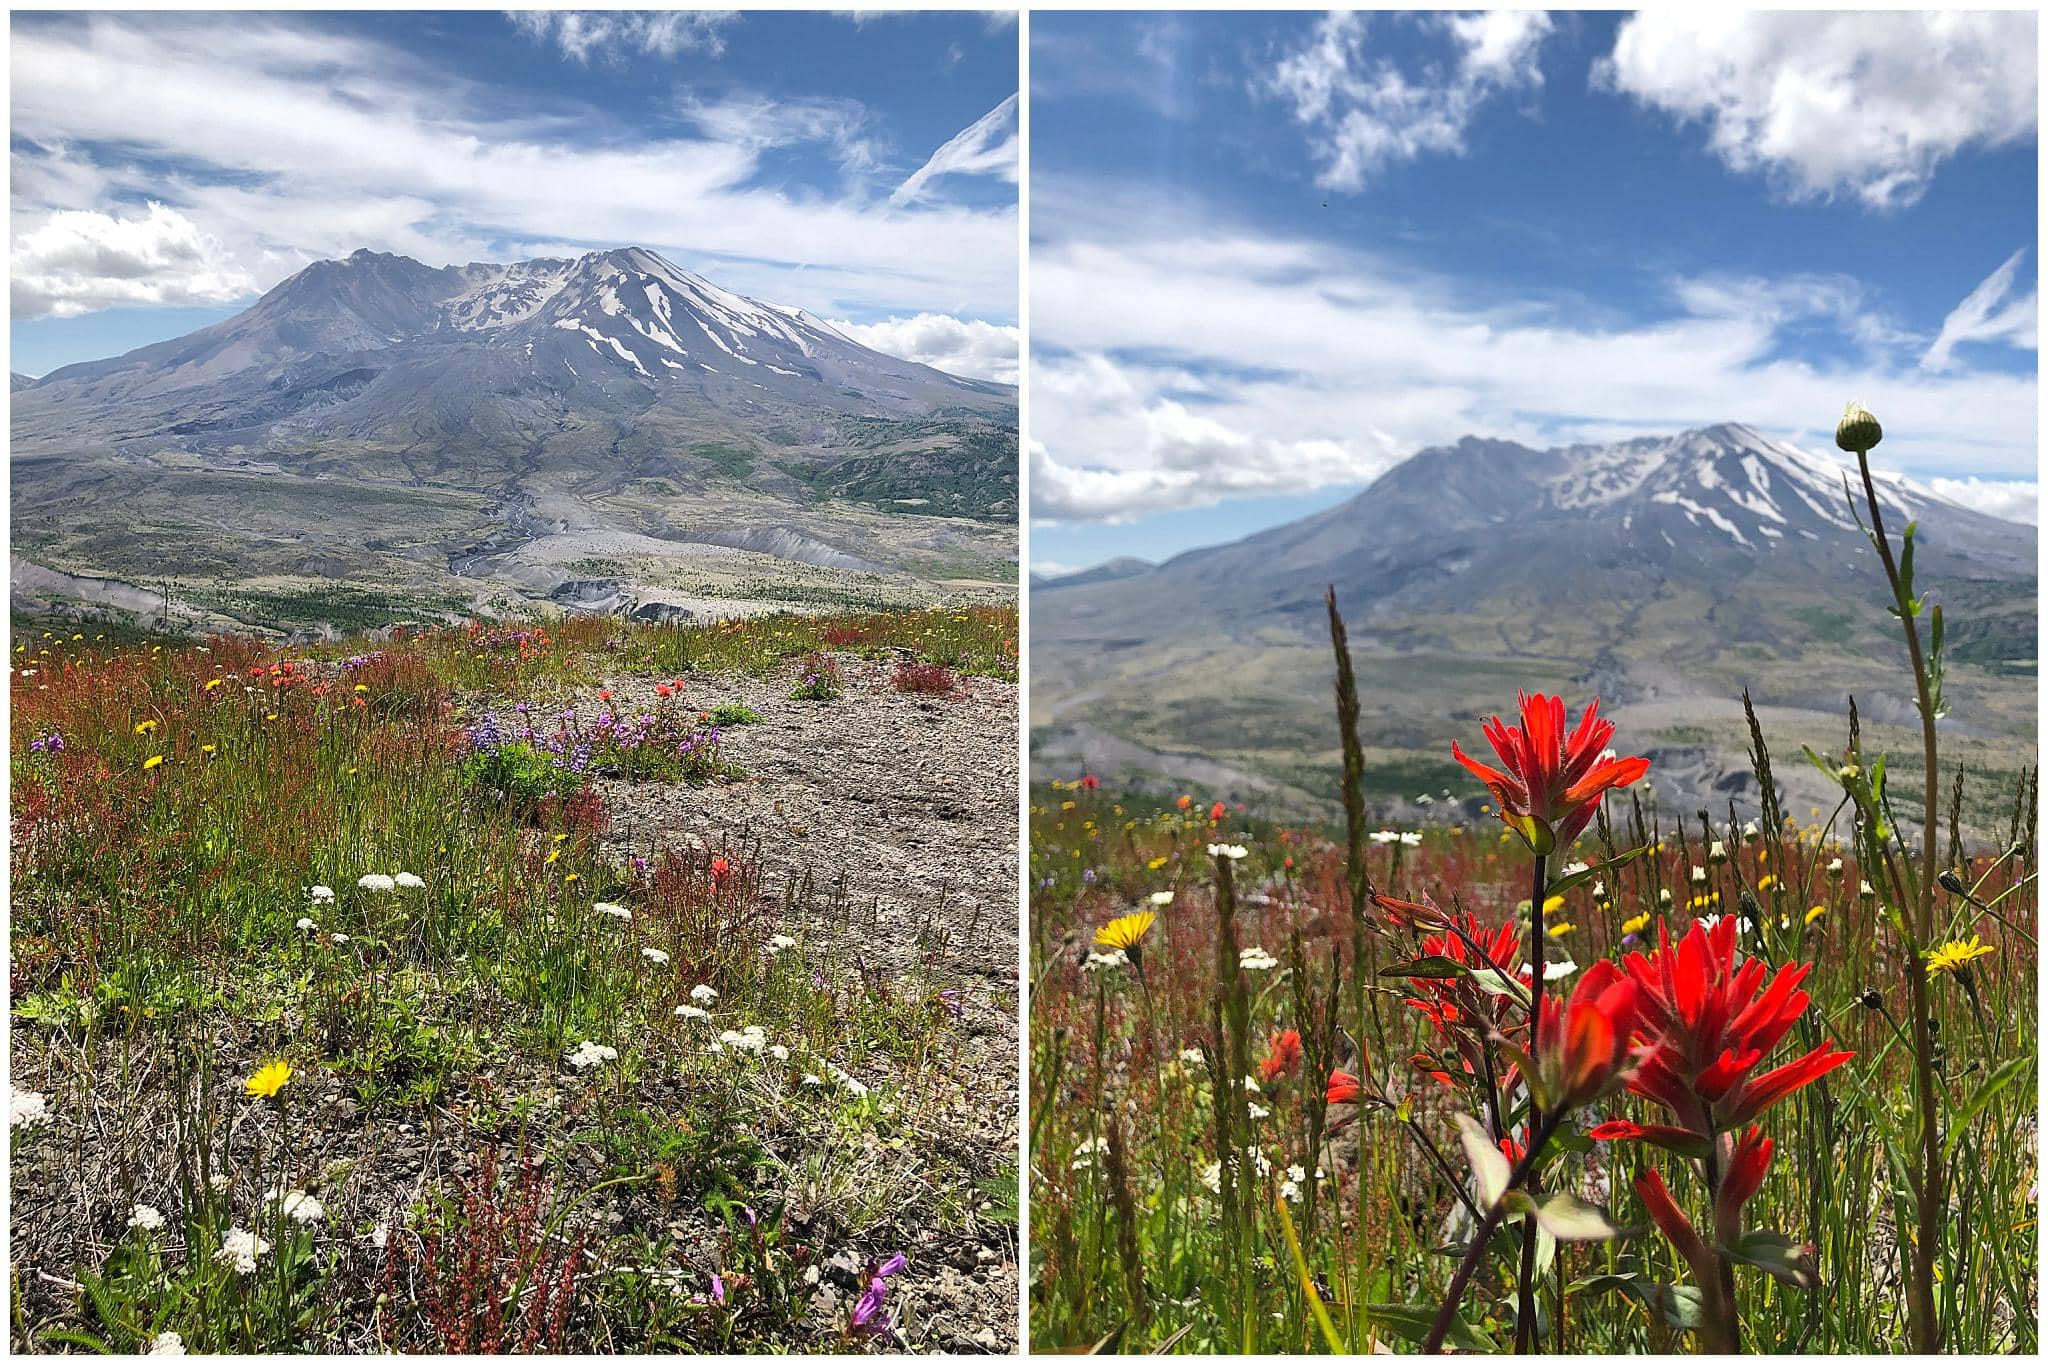 Wildflowers and Mount Saint Helens